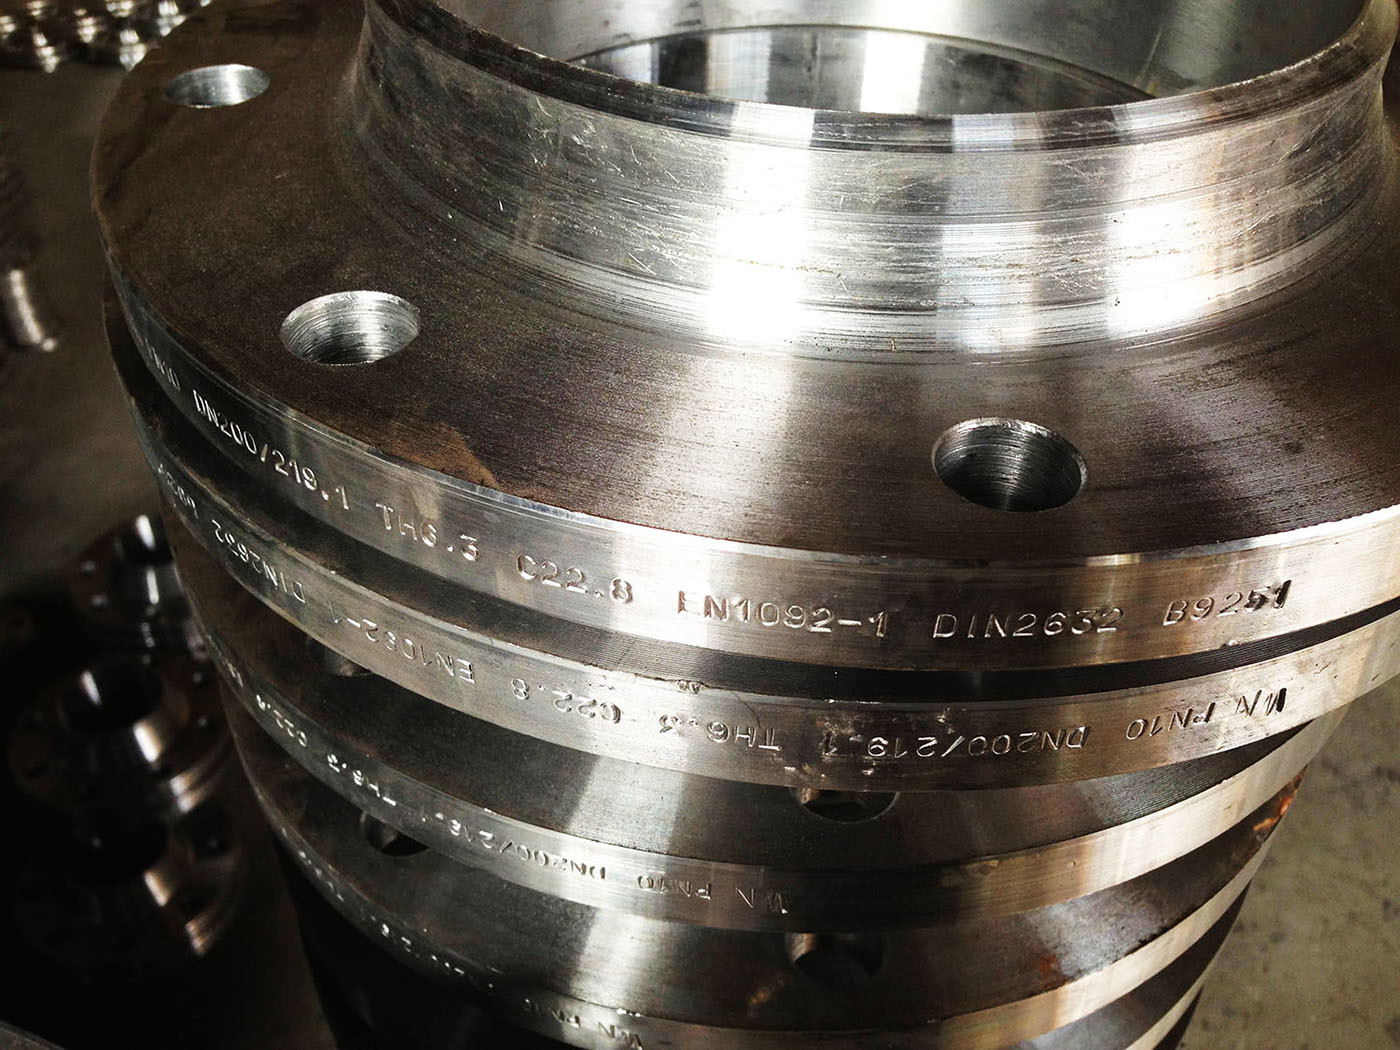 C22.8 Bs En1092-1 DIN 2632 Forging Flanges, P245gh P250gh DIN Steel Flanges